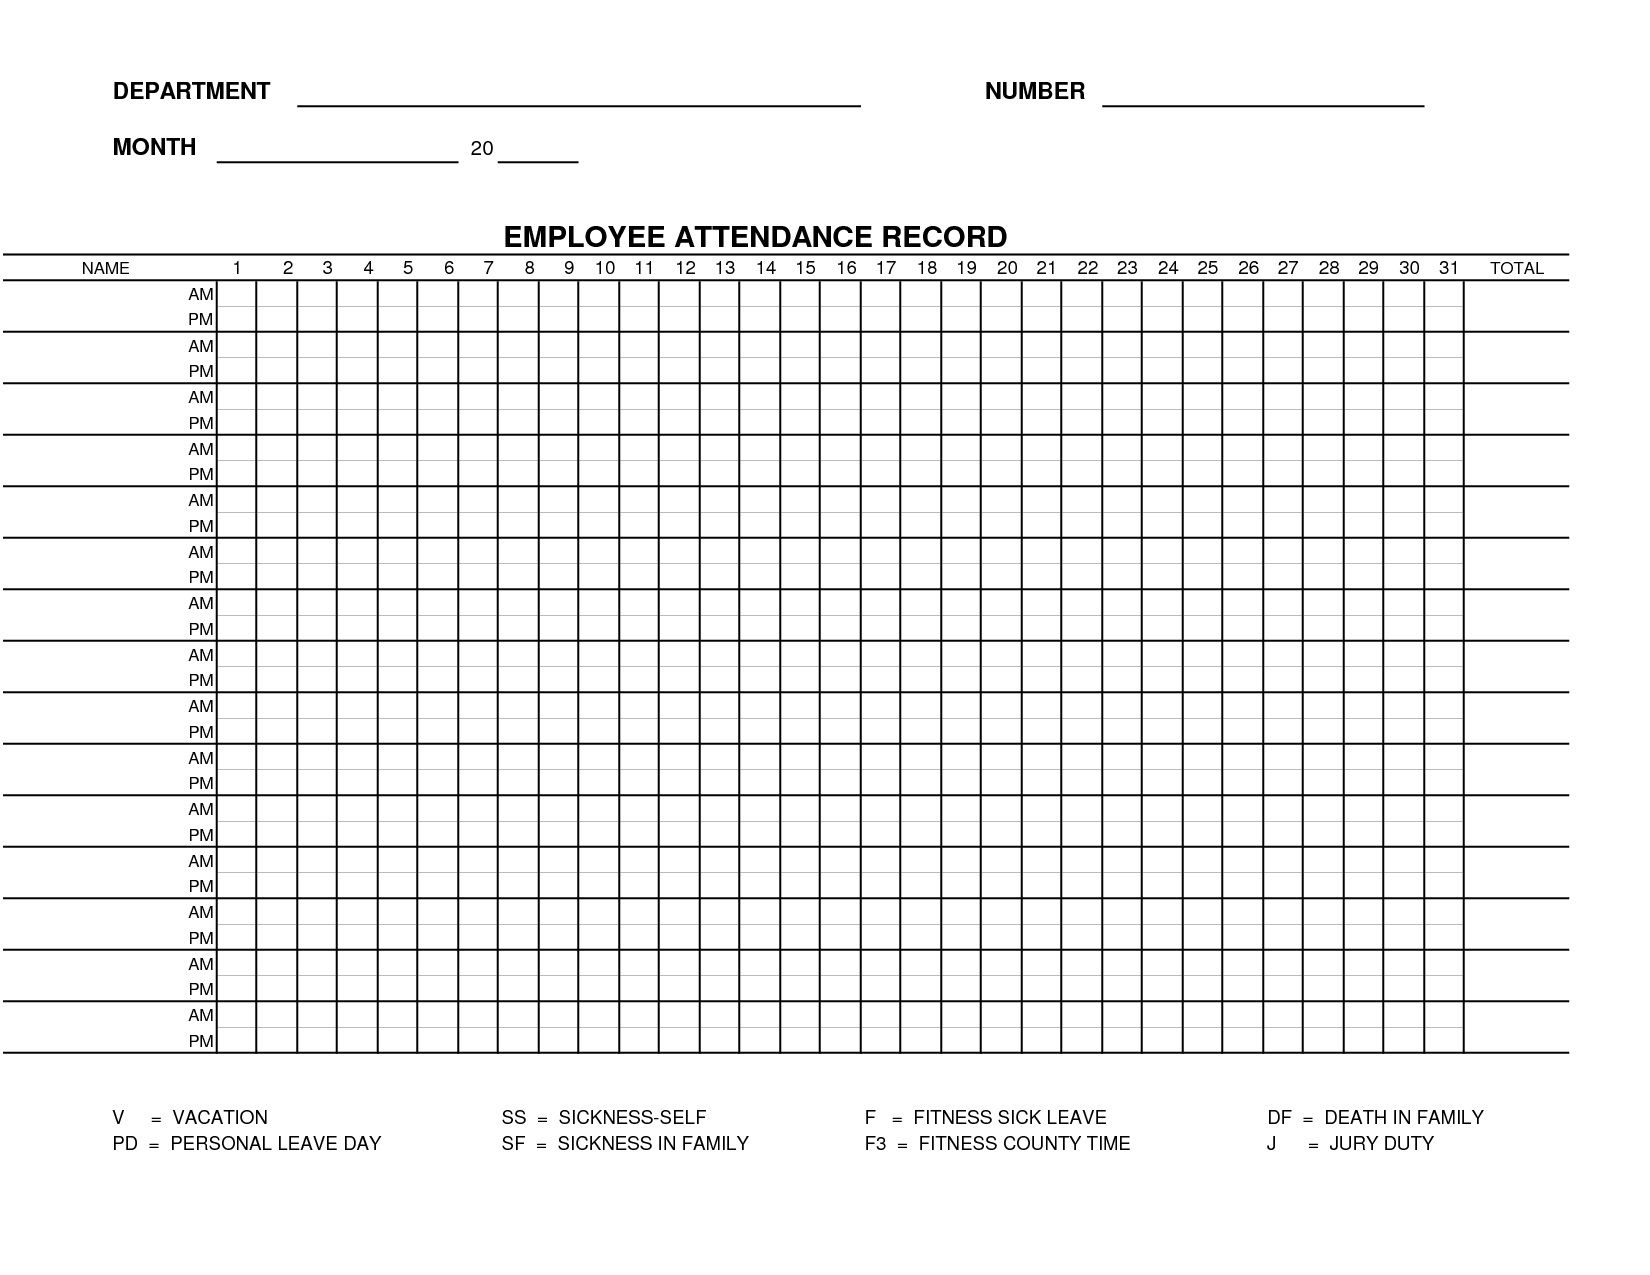 002 Incredible Employee Attendance Record Template Excel Inspiration  Free Download With TimeFull